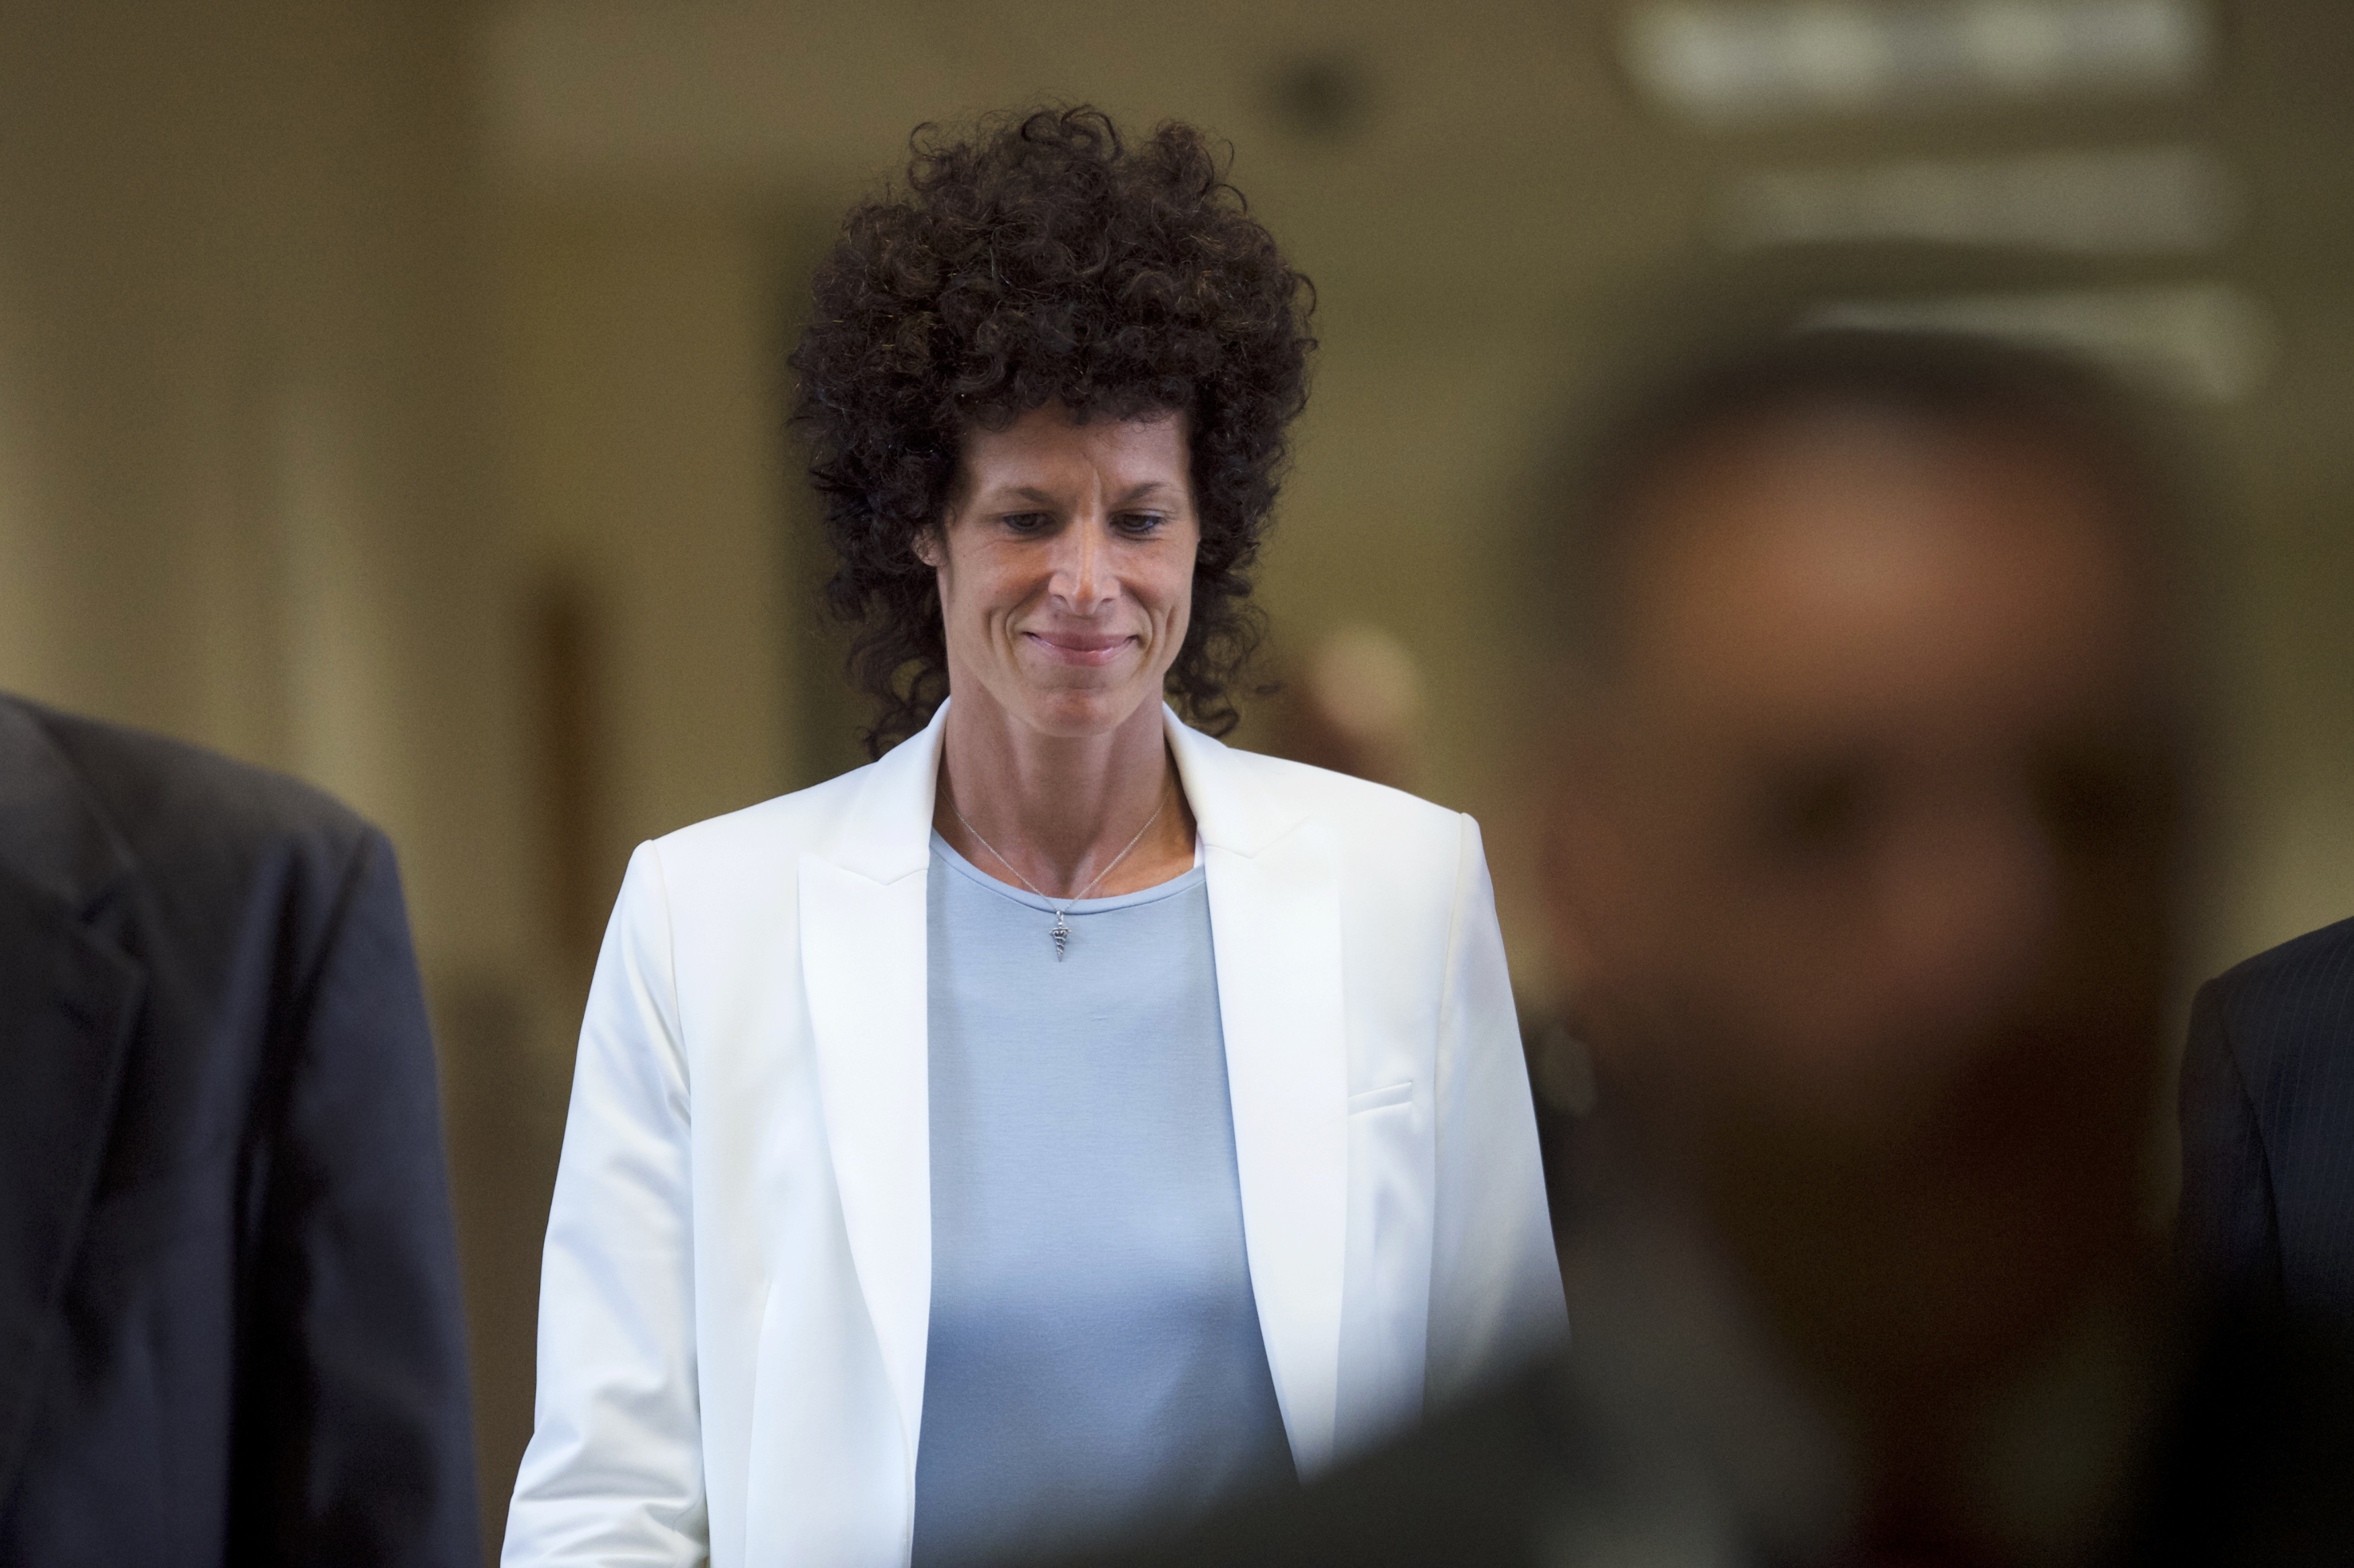 Andrea Constand arrives during Bill Cosby's sexual assault trial at the Montgomery County Courthouse in Norristown, Pennsylvania, June 7, 2017.